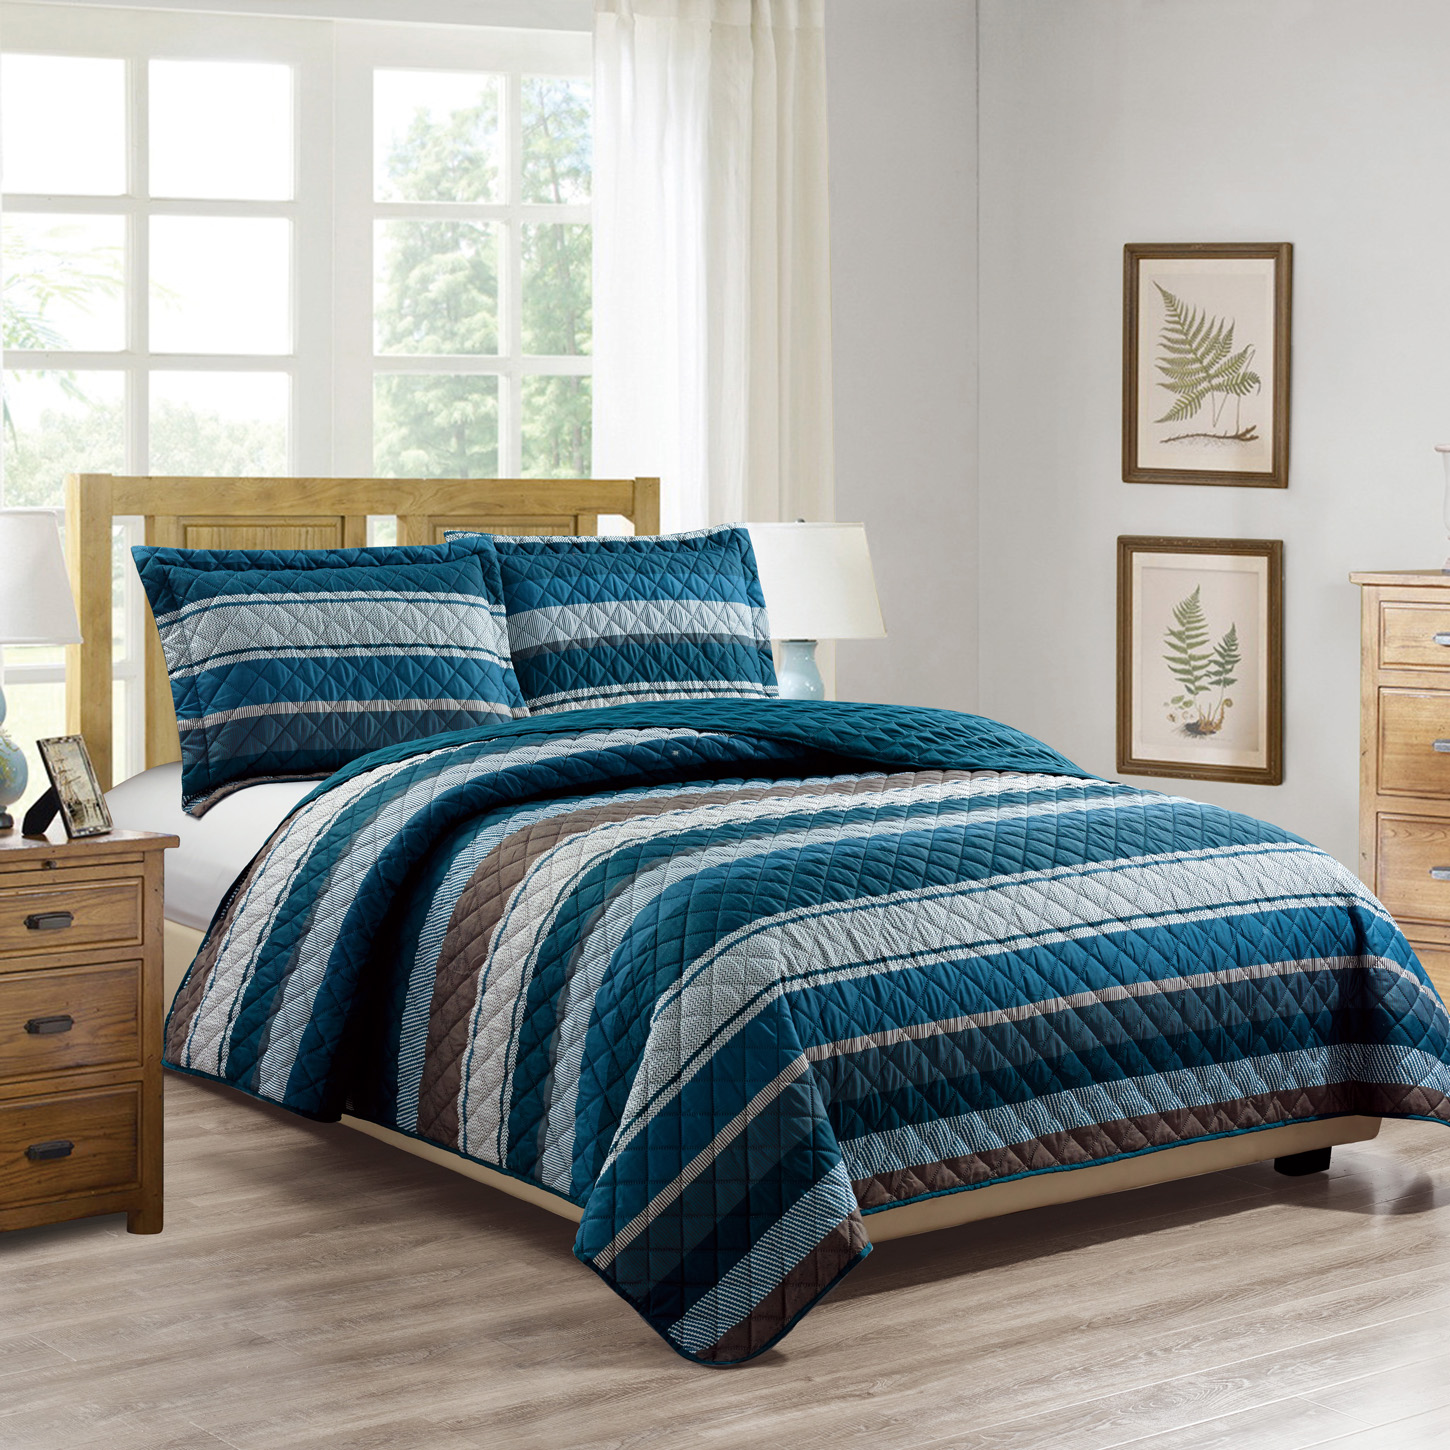 Woven Trends Printed Collection 3PC Striped Blues Quilt Set Bedspread  Coverlet